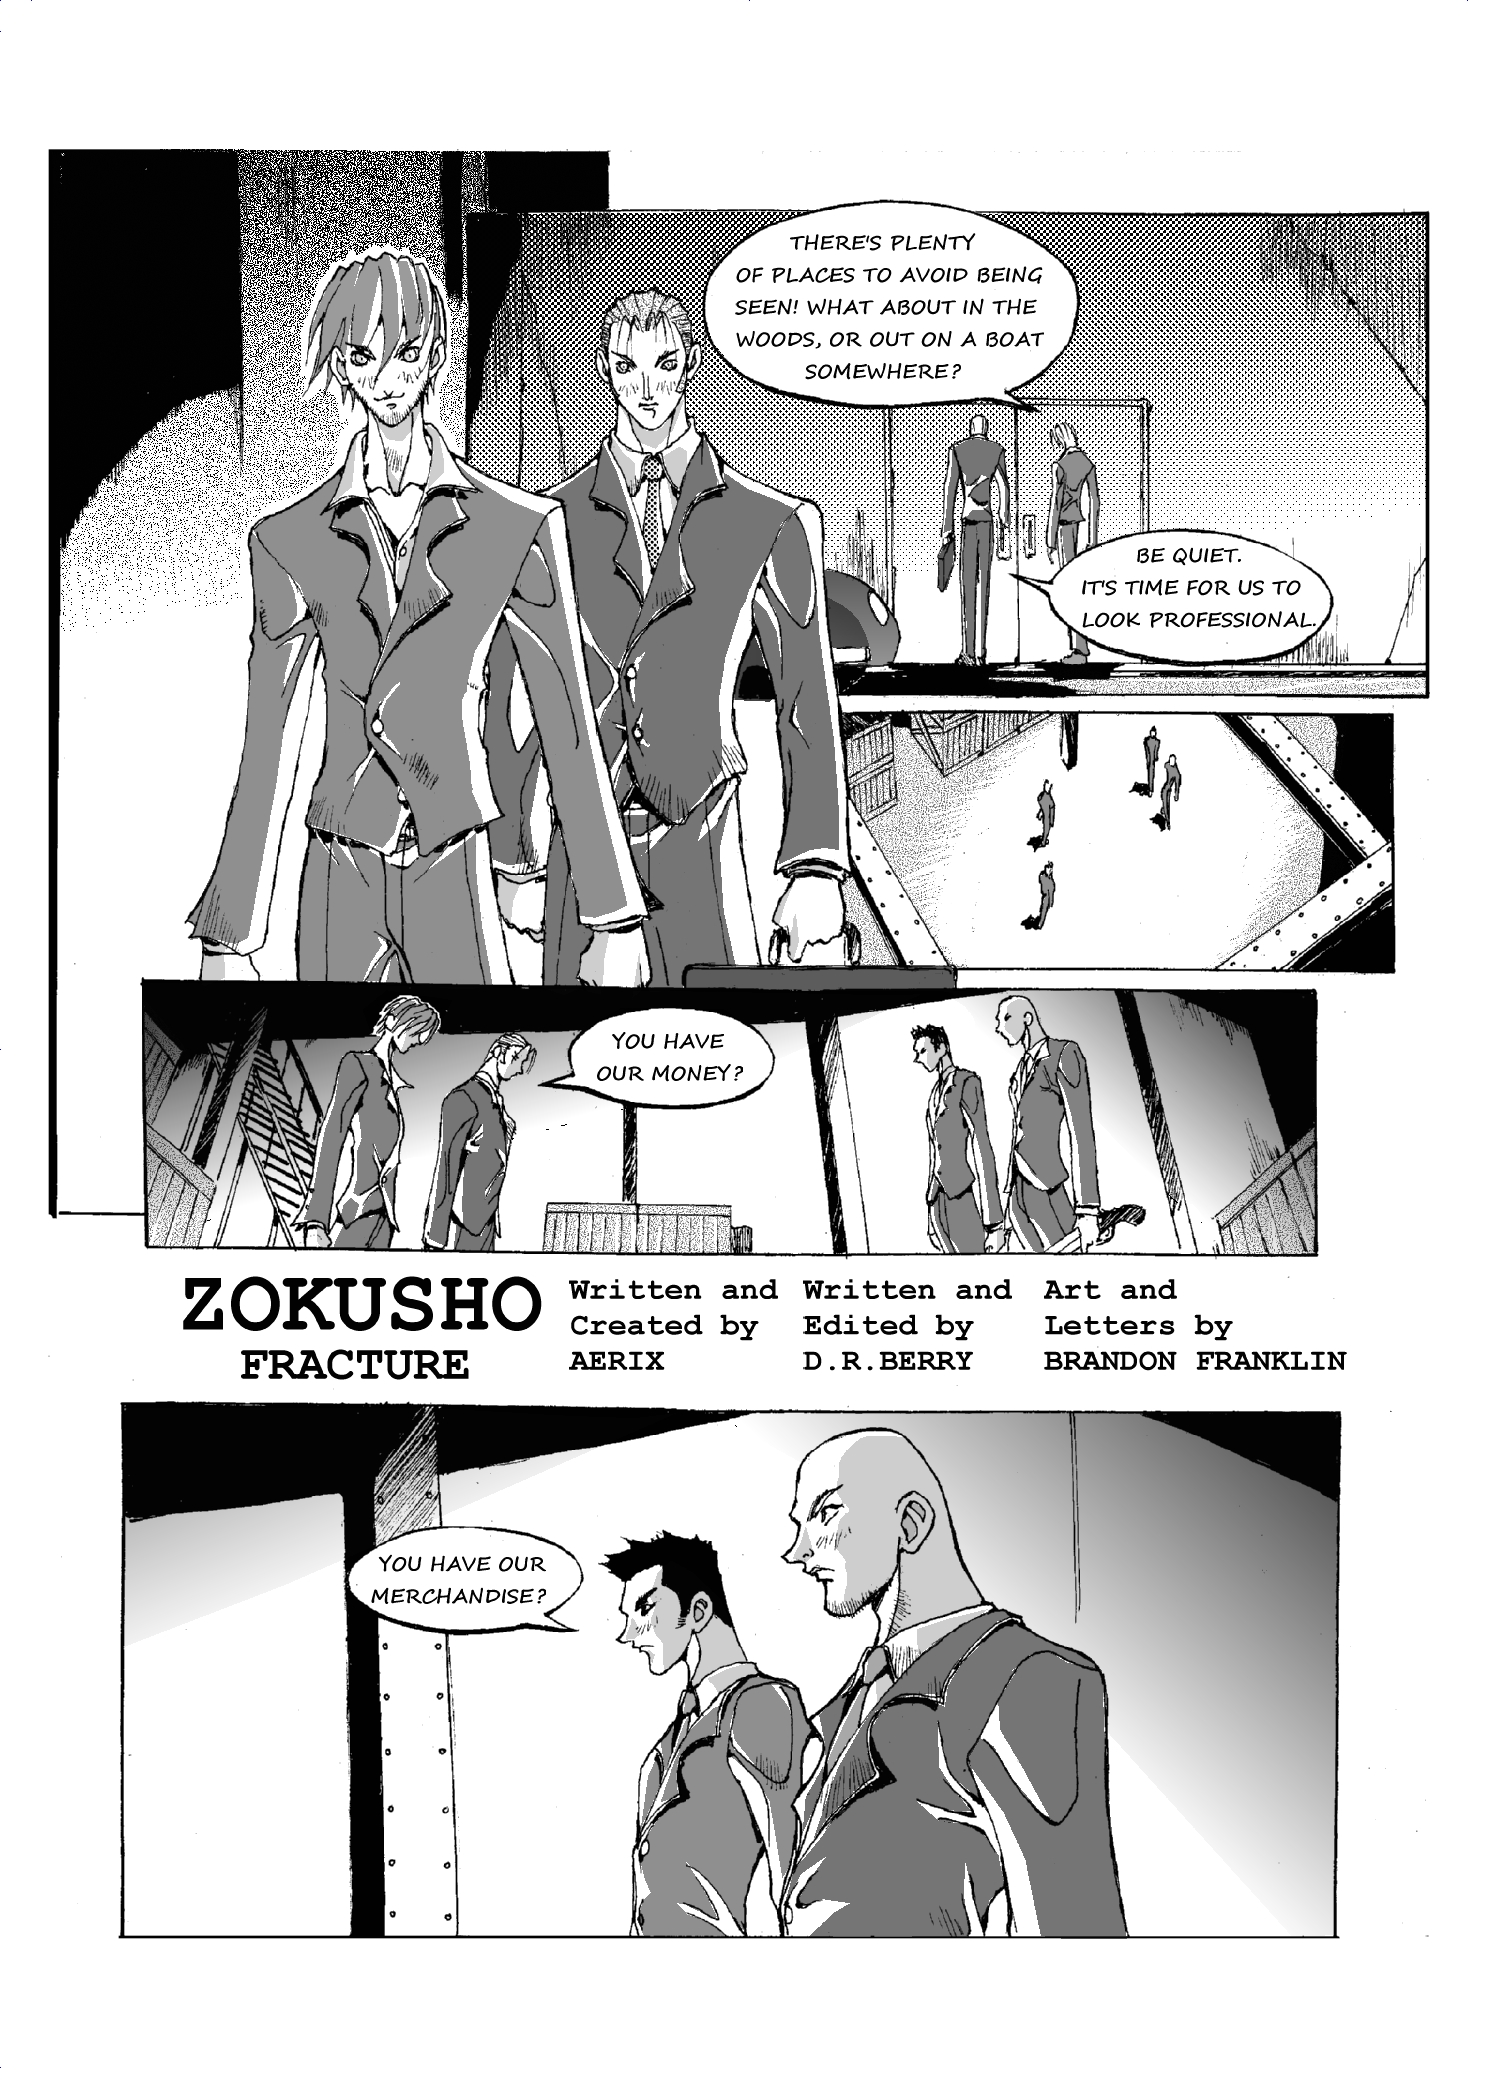 Zokusho: Fracture–page 3